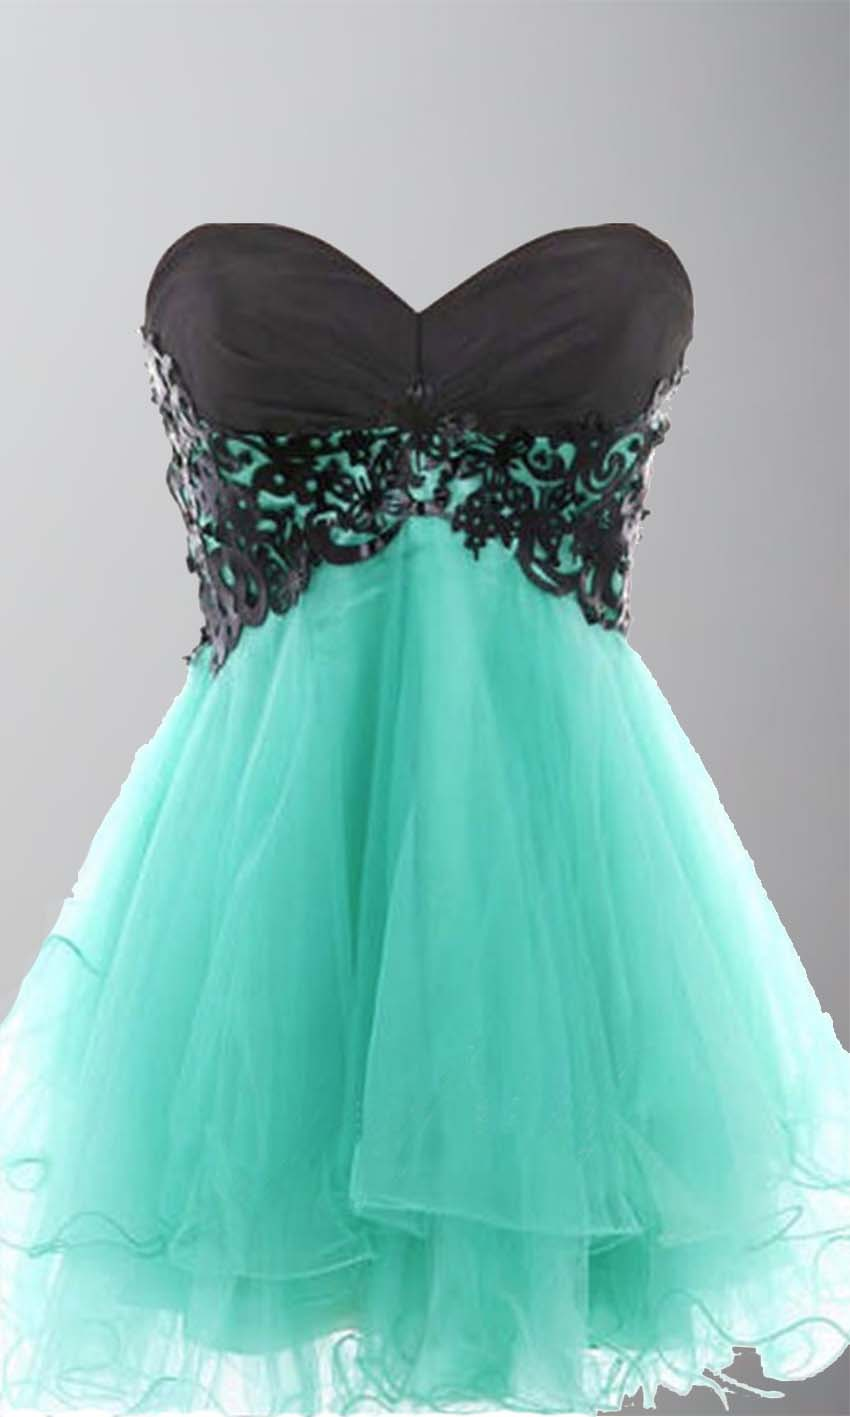 £90.00 : cheap prom dresses uk, bridesmaid dresses, 2014 prom & evening dresses, look for cheap elegant prom dresses 2014, cocktail gowns, or dresses for special occasions? kissprom.co.uk offers various bridesmaid dresses, evening dress, free shipping to uk etc.